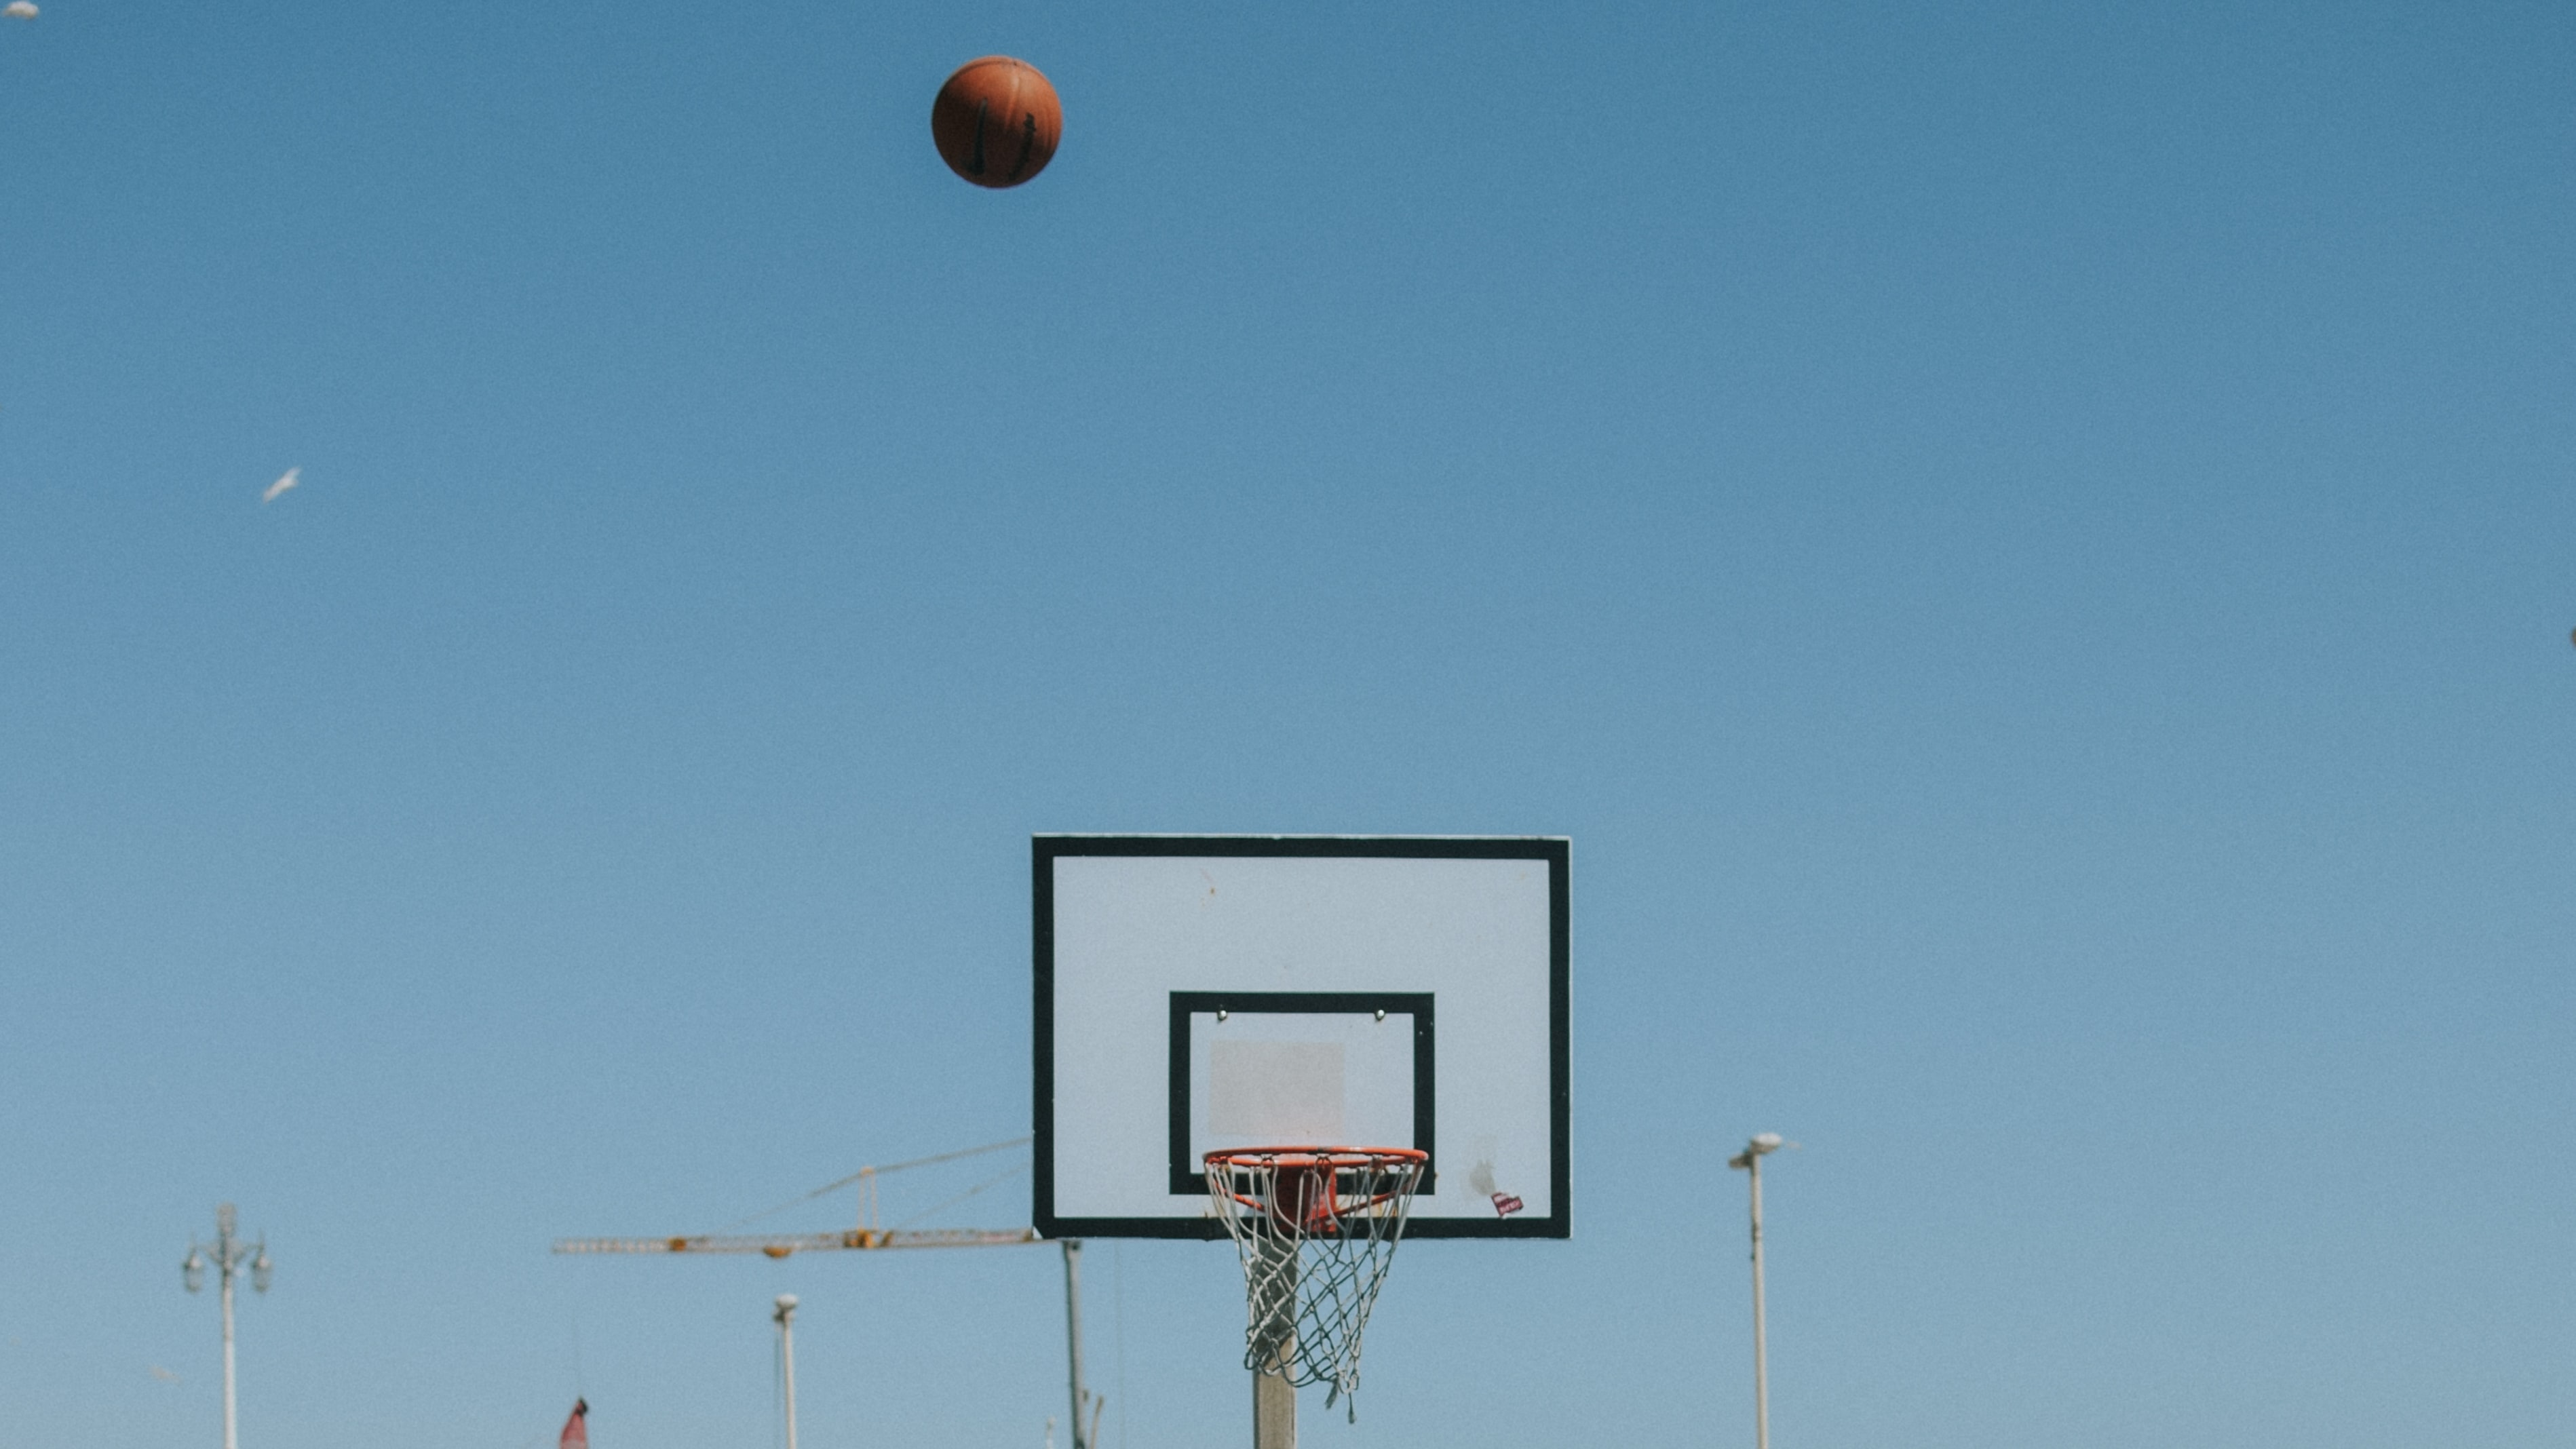 flying basketball and basketball hoop under blue sky during daytime